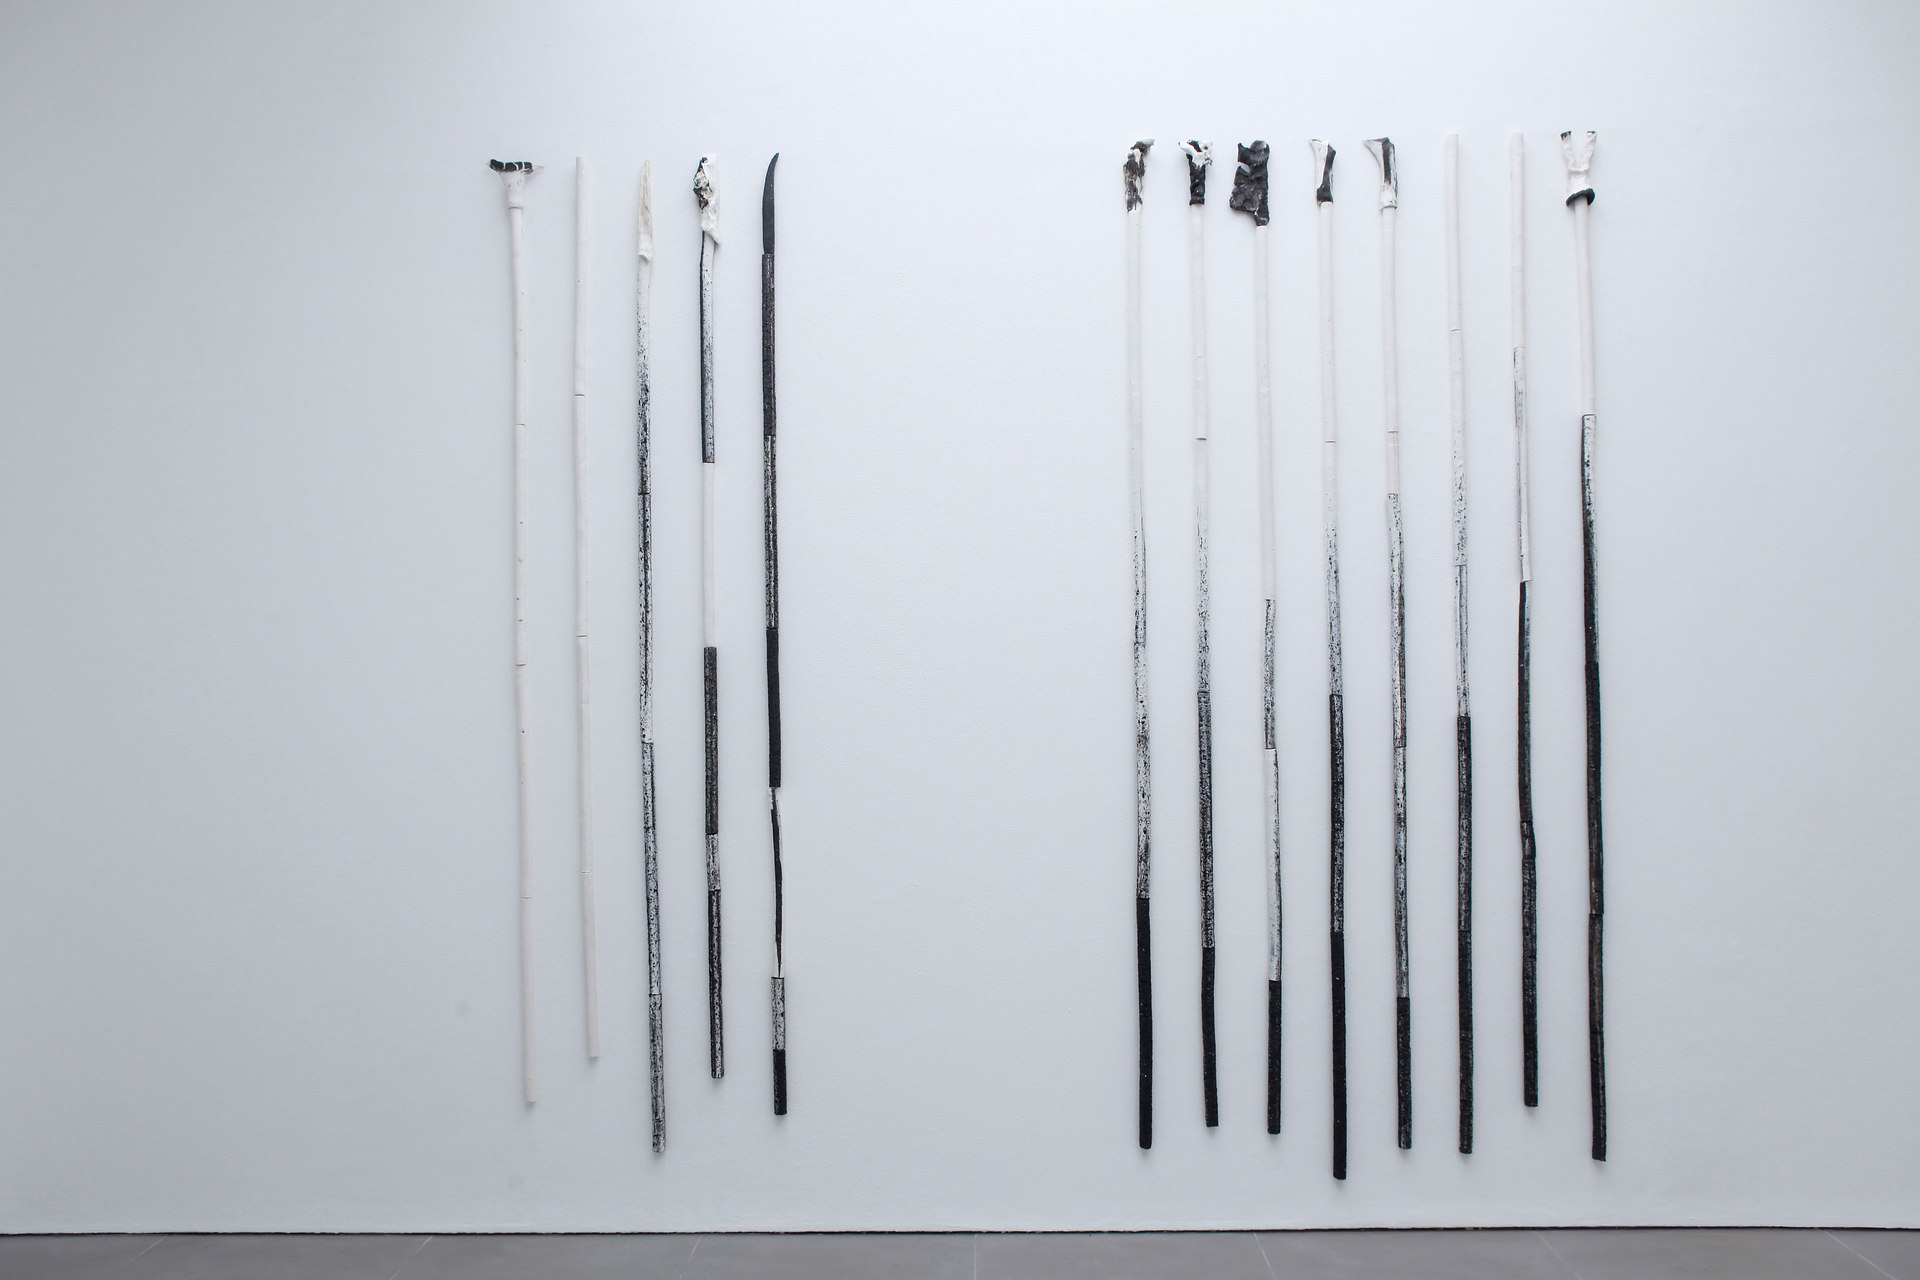 Peles Empire, Formation, 'formation 9', 'formation 10', 2013, unglazed porcelain with black grog, Cell Project Space